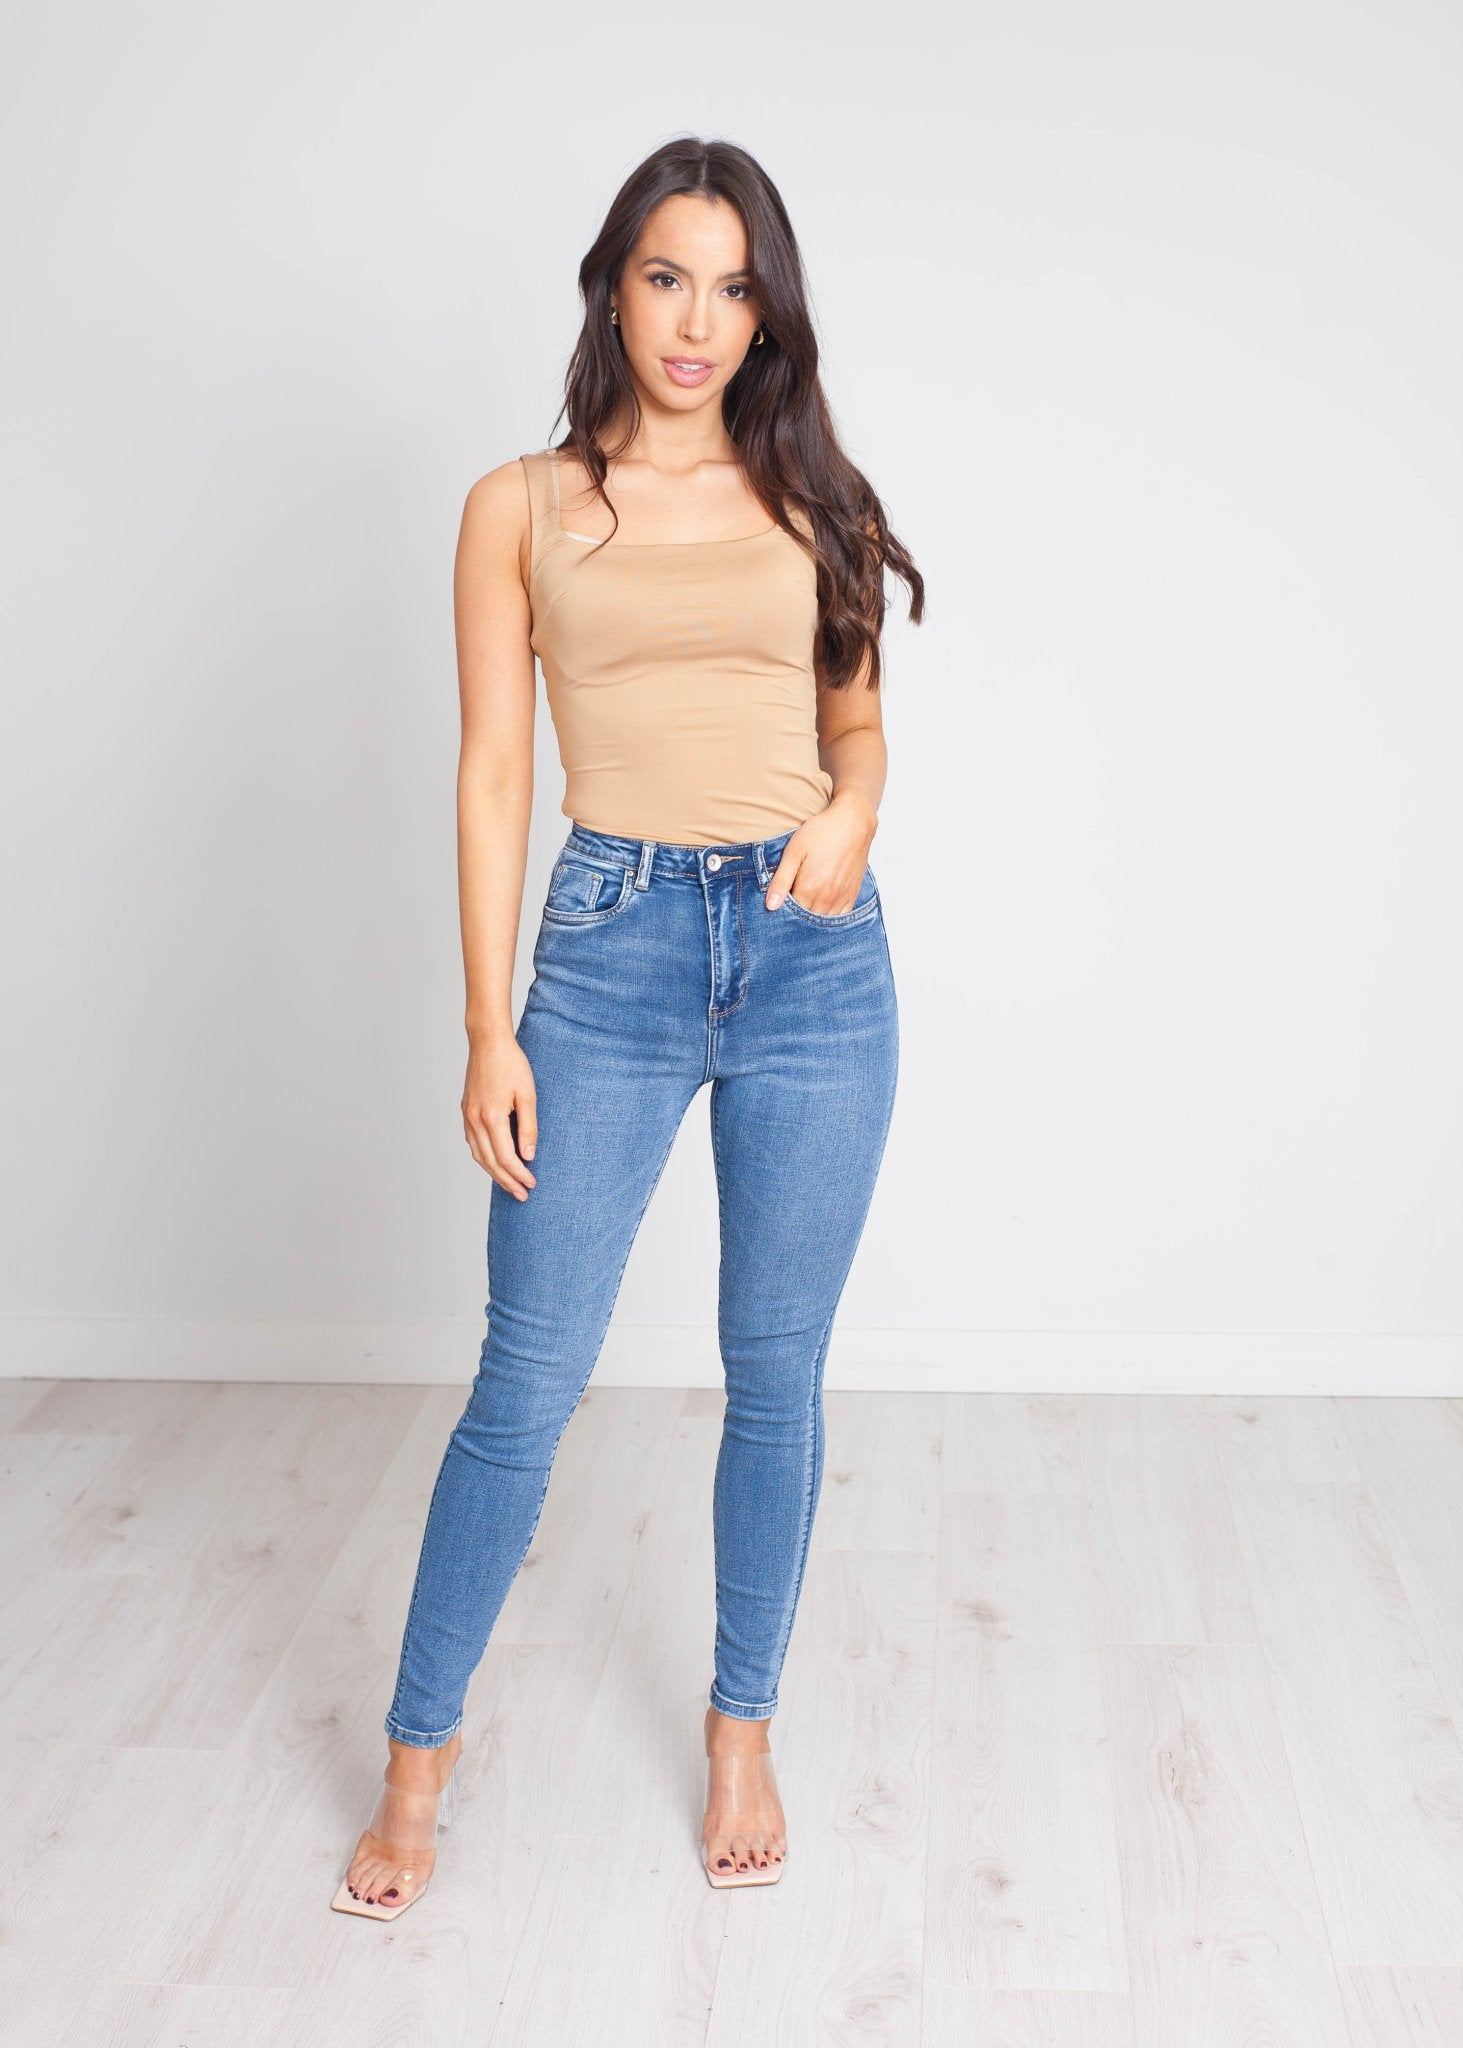 Avery High Waist Skinny Jean In Denim - The Walk in Wardrobe